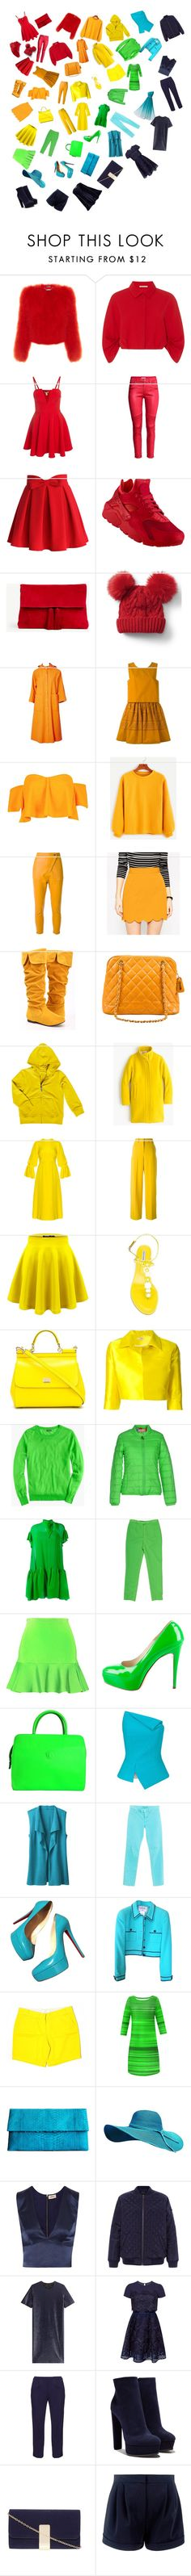 """the all colors is beautiful"" by gofran10 ❤ liked on Polyvore featuring Alexander McQueen, Emilia Wickstead, Chicwish, NIKE, Ann Taylor, Gap, Fendi, Boohoo, Manning Cartell and Chanel"